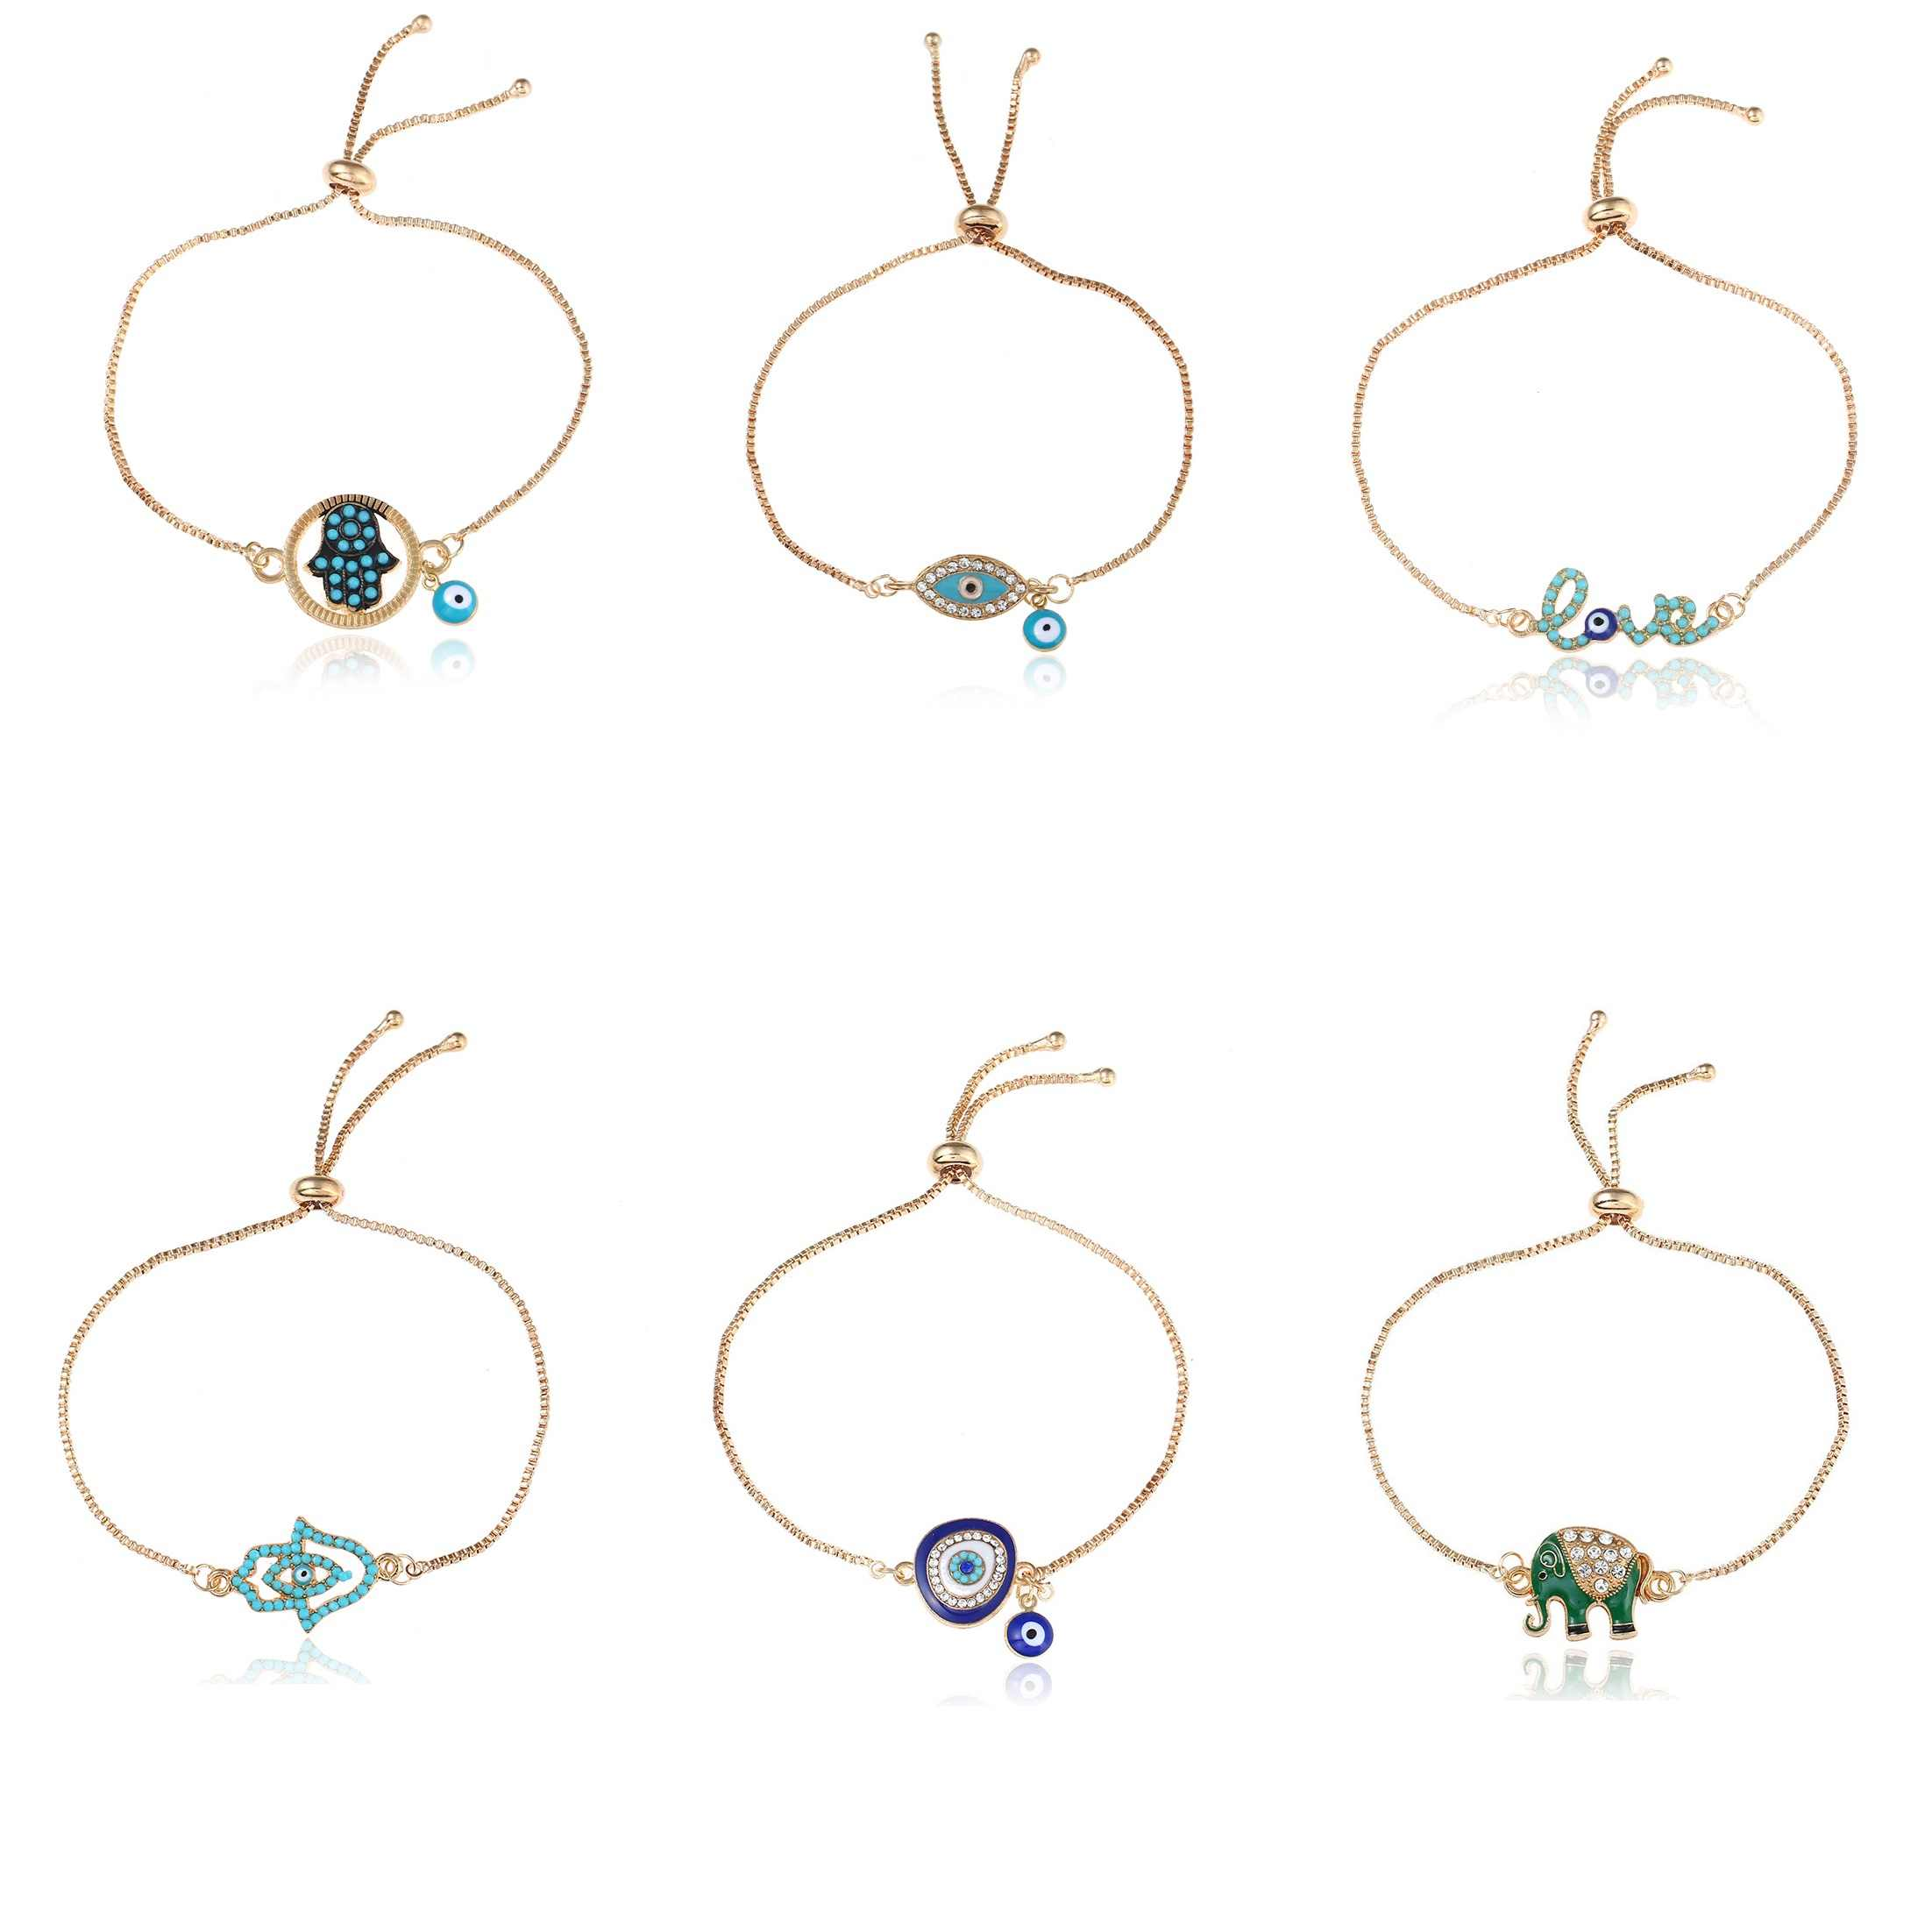 2018 Good Luck Hamsa hand Charm Blue Evil Eye Bracelet Jewelry Turkey Fatima Hand Handmade Gold Color Chain for woman gift